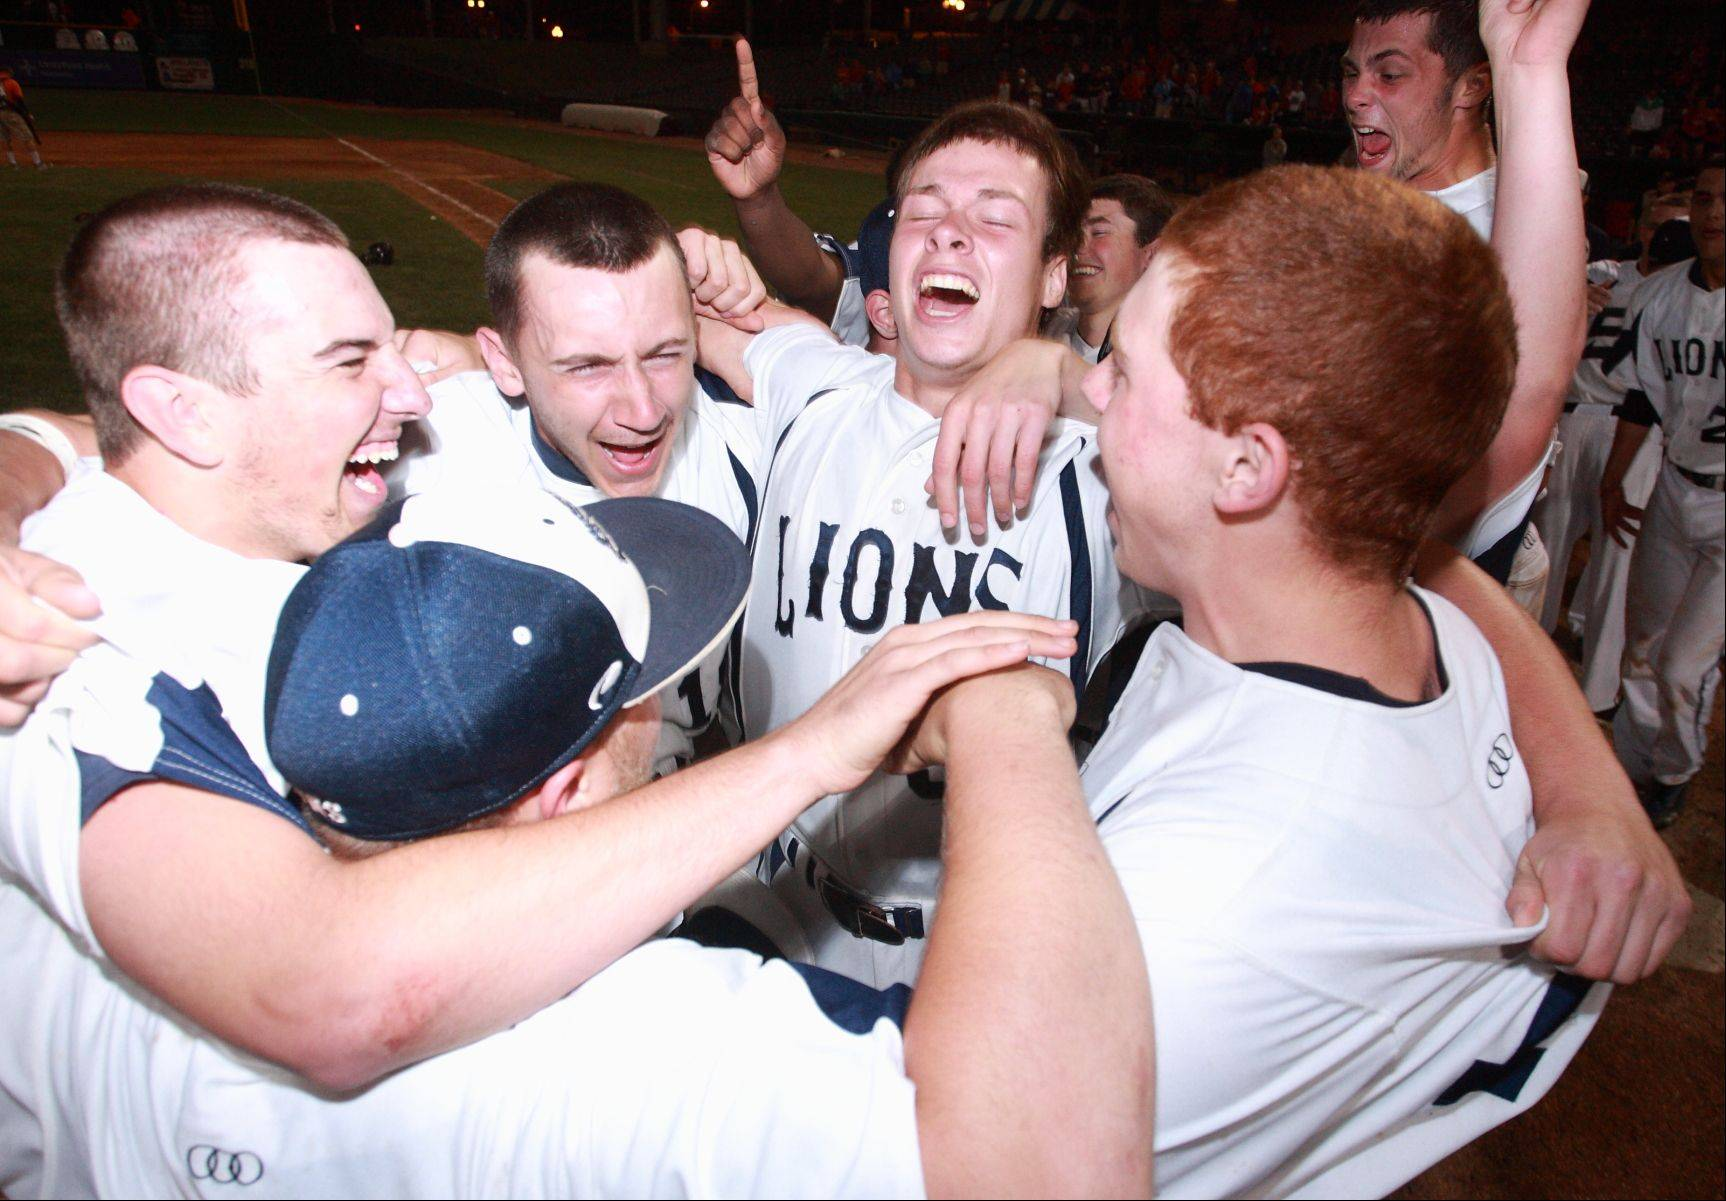 June 1, 2013 - Peoria, IL - Kevin Coppin lets out a loud yell with teammates as the Lions celebrate their state champion status at the IHSA state baseball tournament Saturday evening. Lisle defeated Pleasant Plains 10-1 to win the Class 2A title. [Photo: PhotoNews/Clark Brooks]